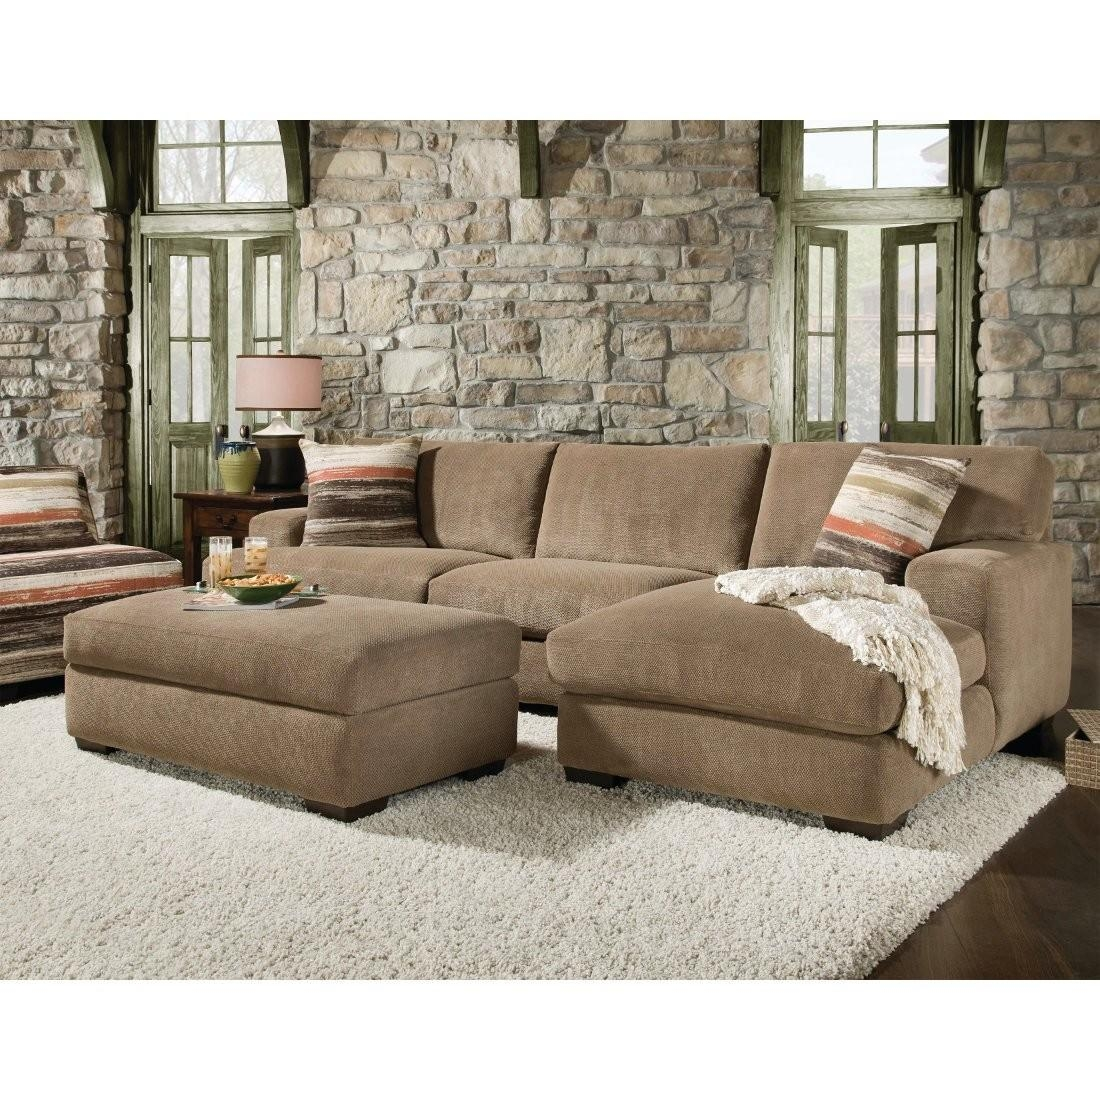 Small Sectional Sofa With Chaise And Ottoman | Tehranmix Decoration In Sectional With Ottoman And Chaise (View 3 of 20)